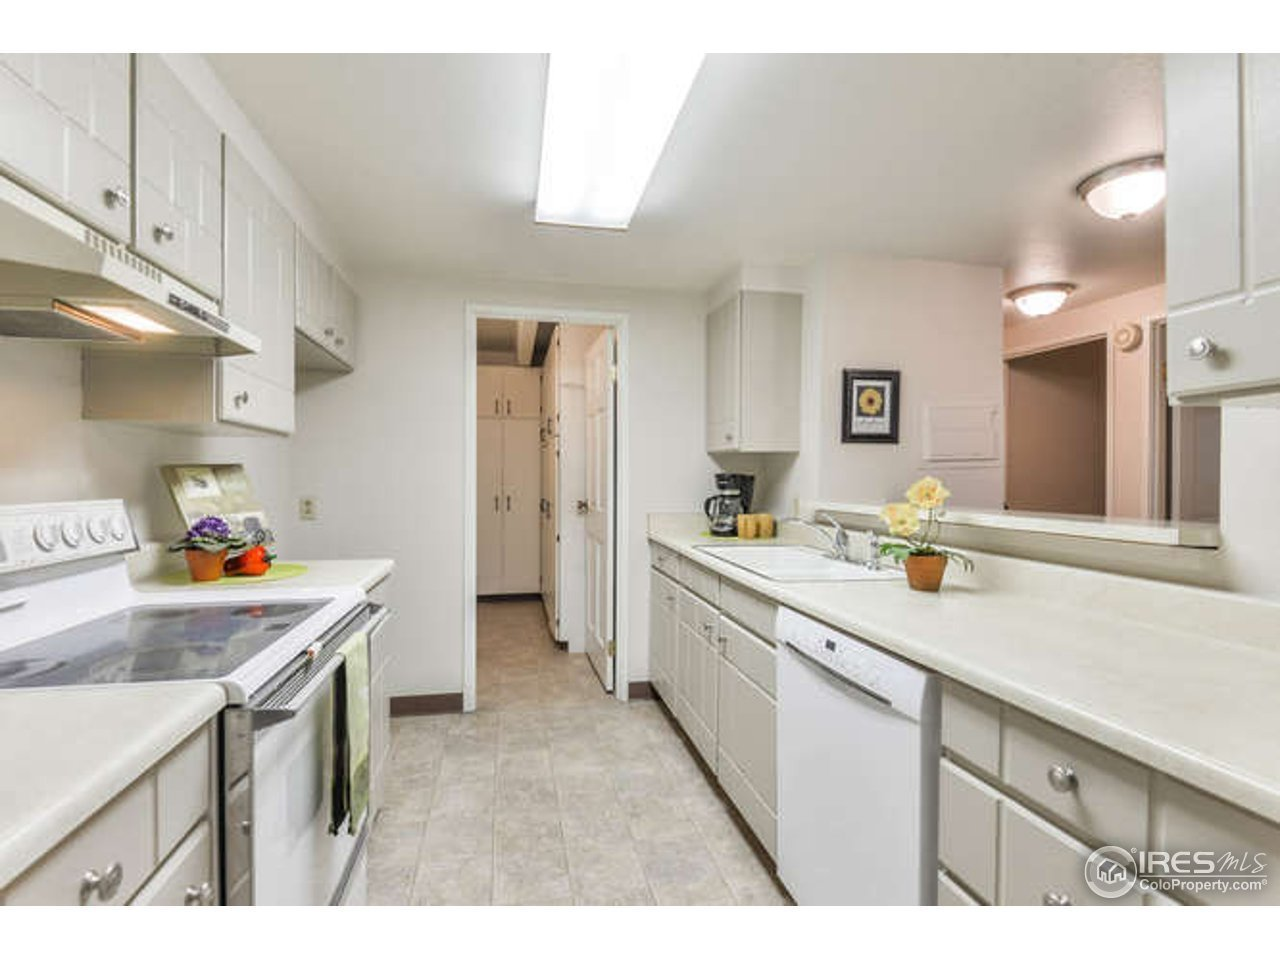 415 S Howes St #209, Fort Collins, CO 80521 | MLS# 826922 | Redfin